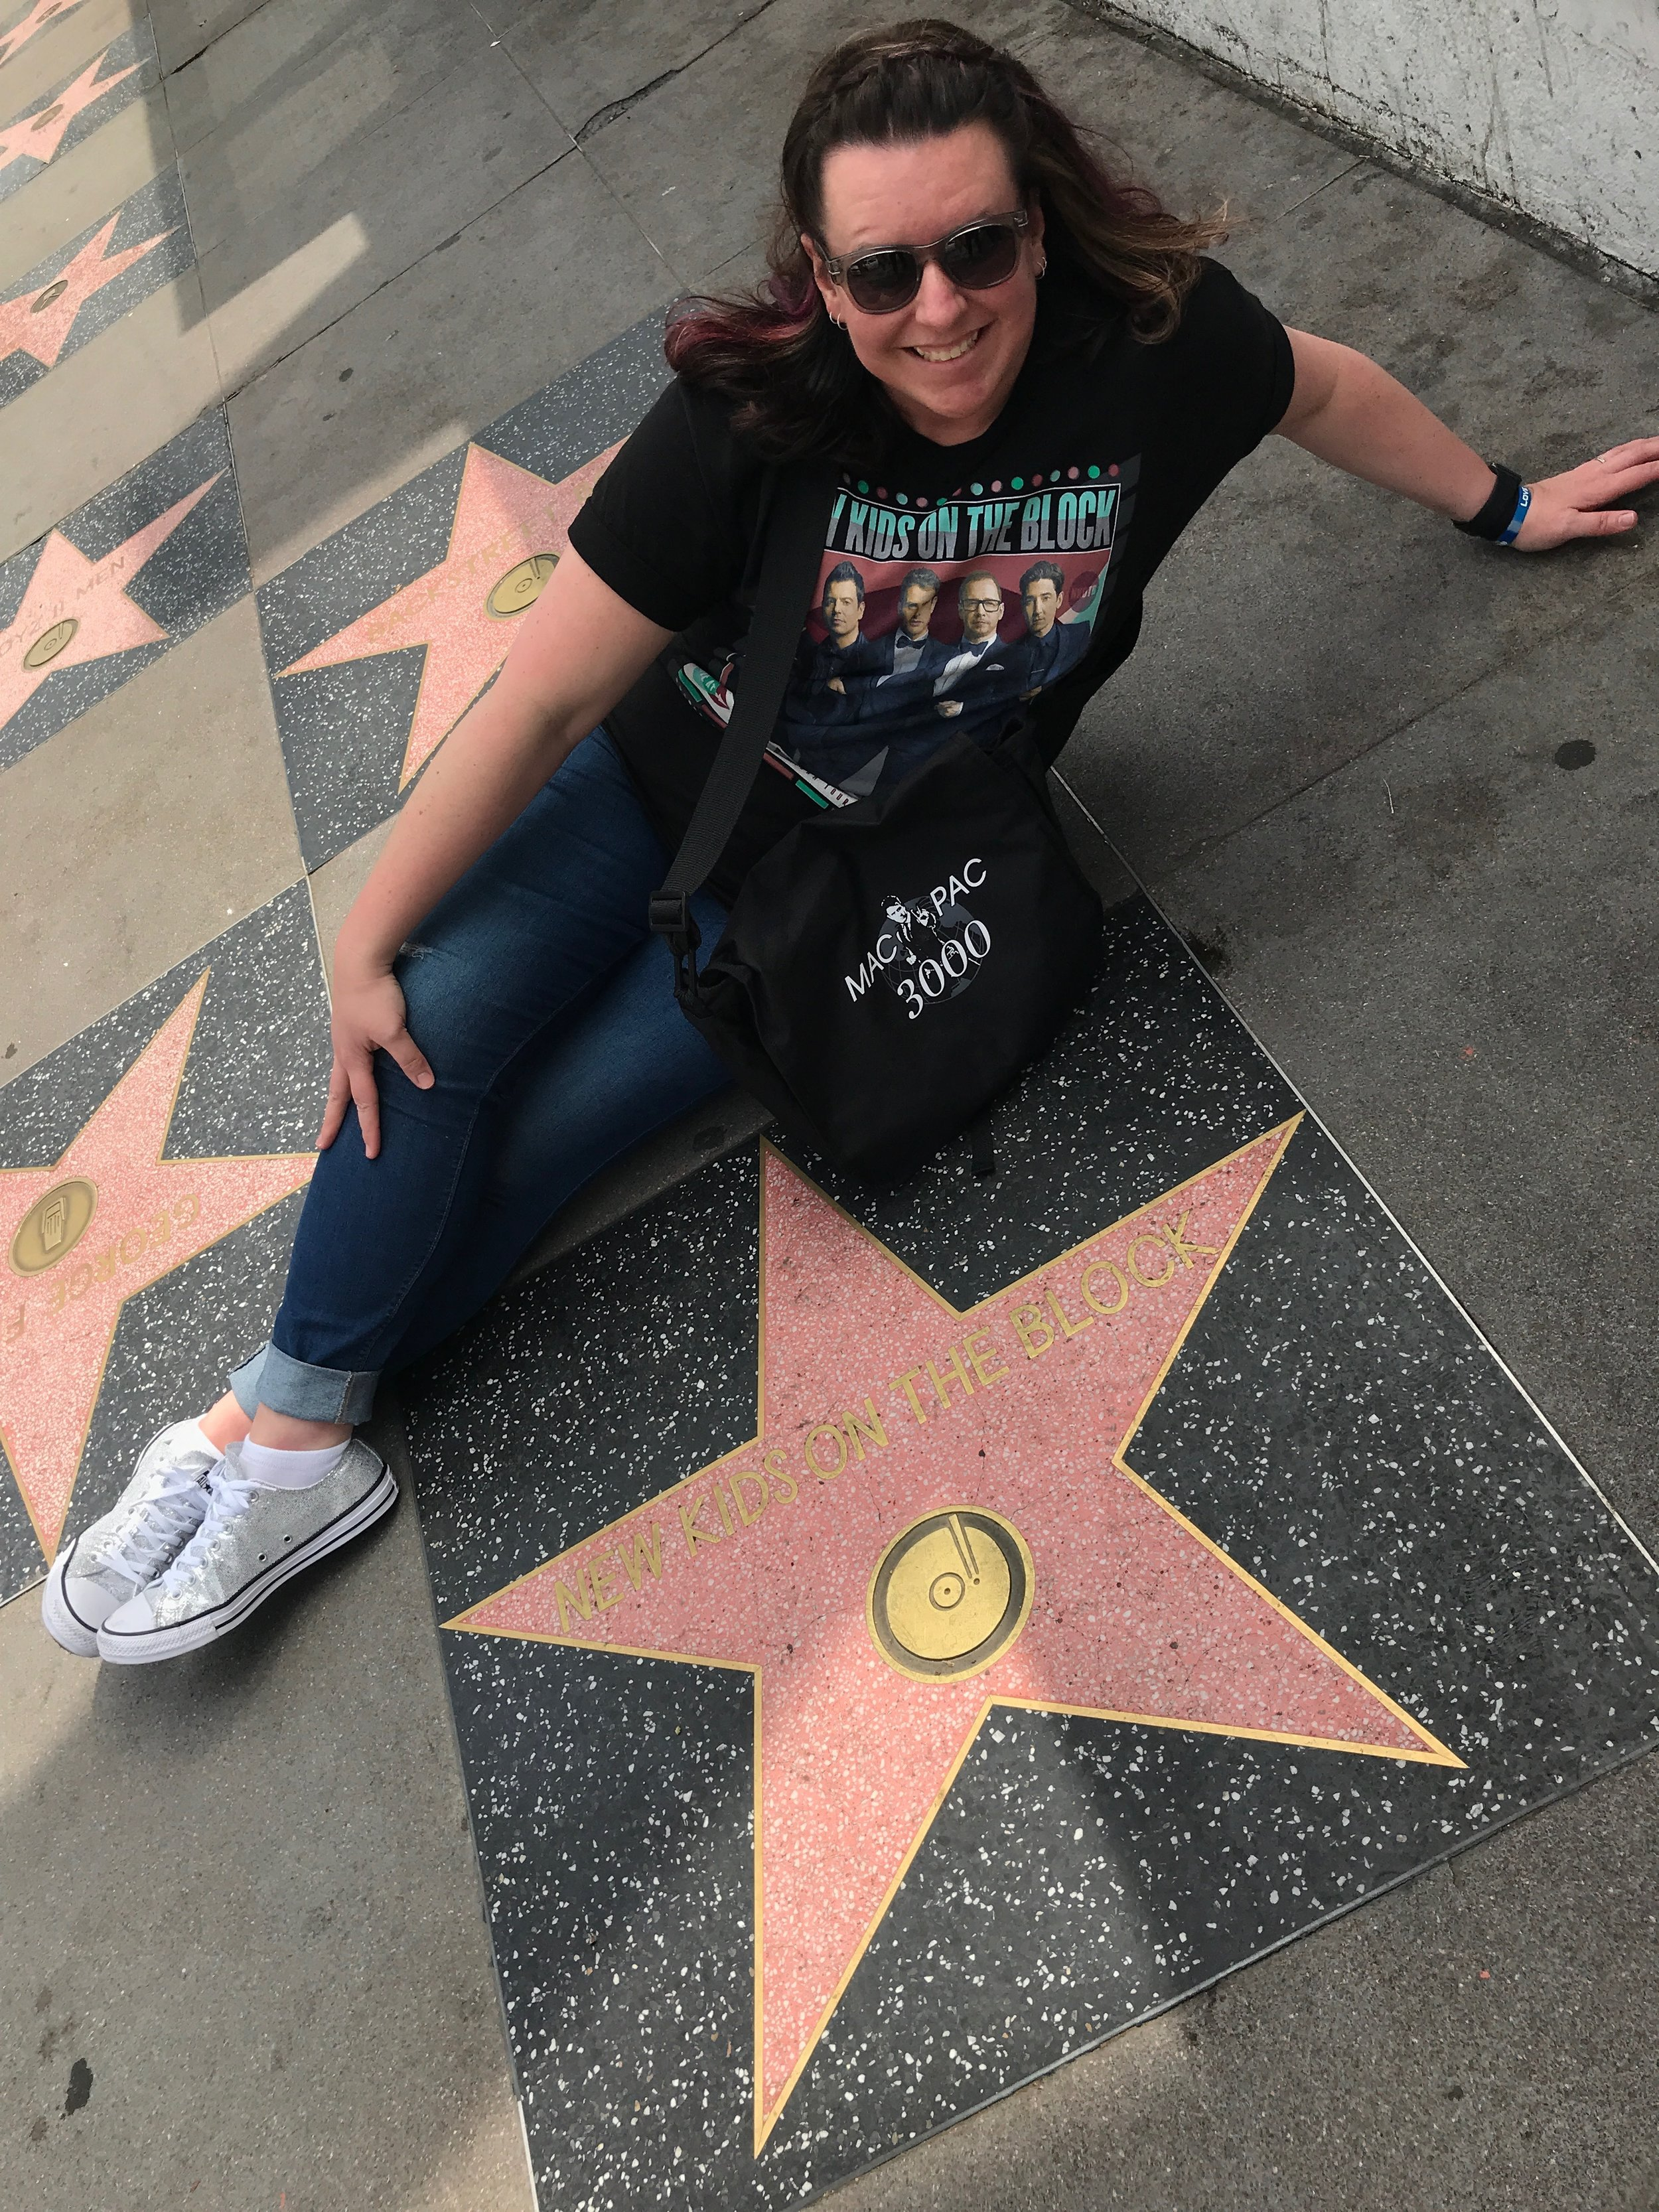 Nikki & The New Kids on the Block Star - Hollywood Walk of Fame - Hollywood Blvd